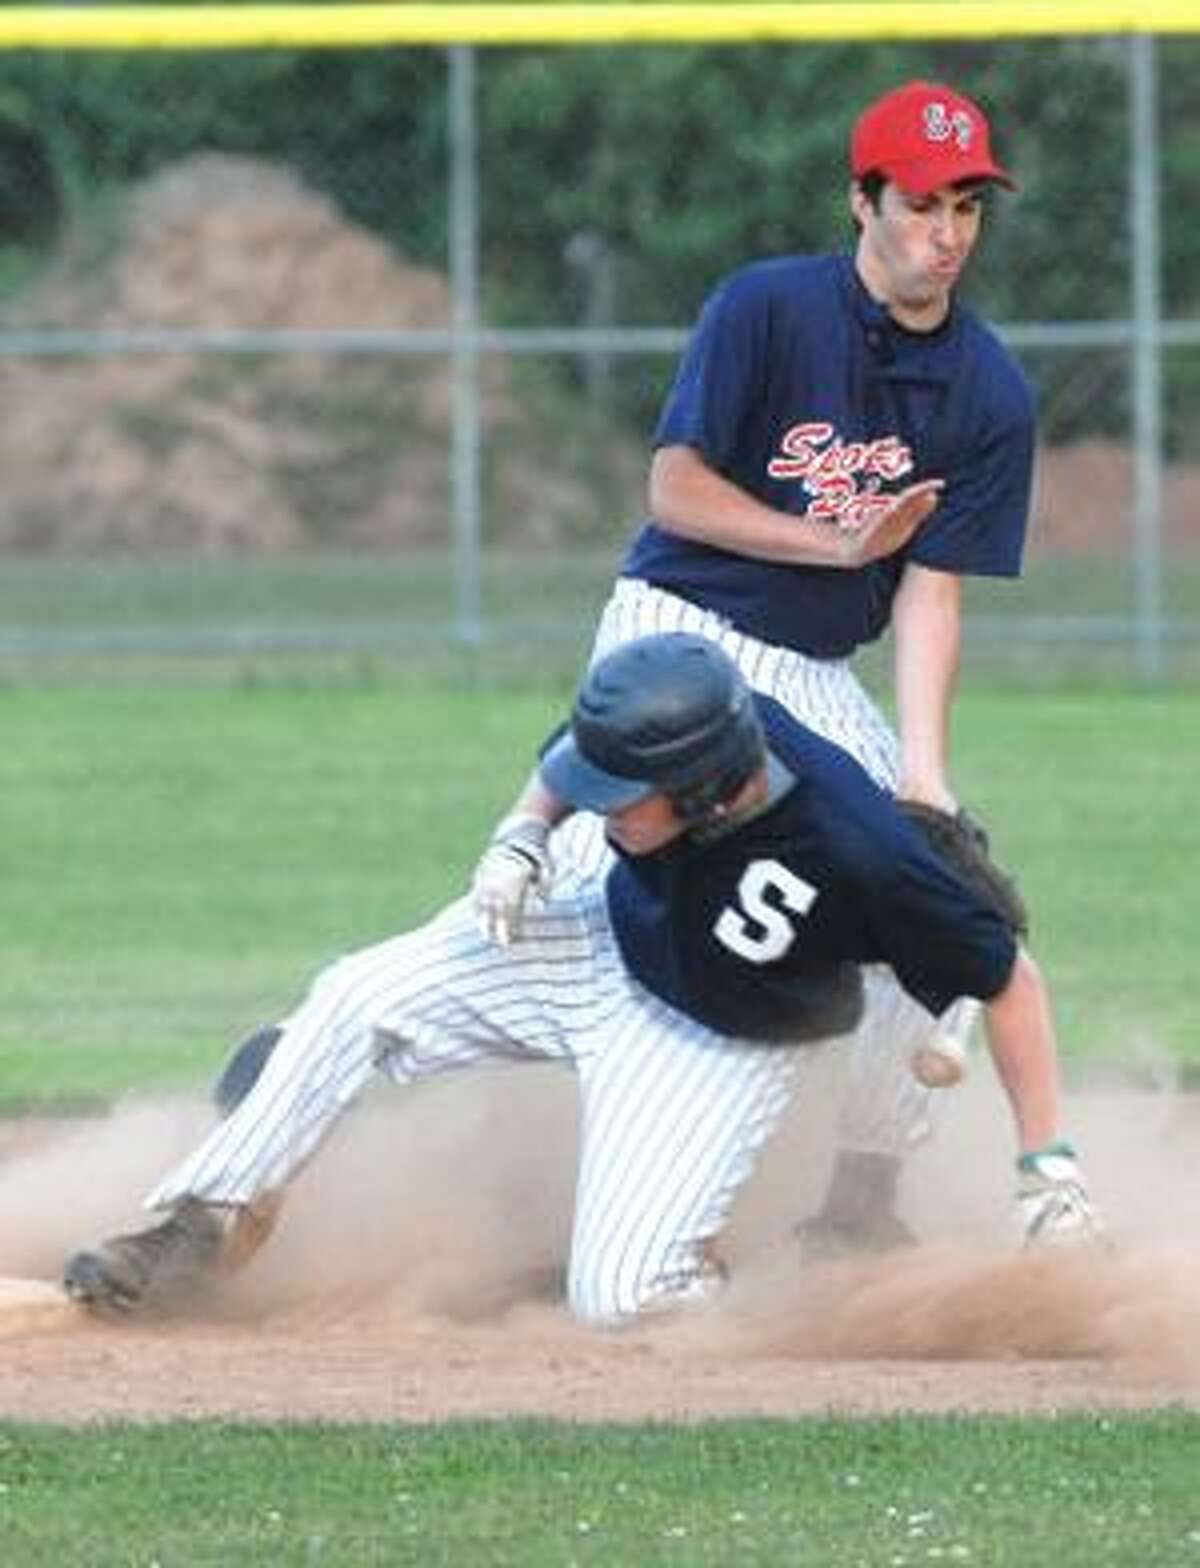 MIC NICOSIA/Register Citizen Washington's James McCluskey slides safely into second beneath Torrington's Jimmy Fuchsman during Wednesday's game at Fuessenich Park in Torrington. Torrington won 12-1. Purchase a glossy print of this photo and more at www.registercitizen.com.